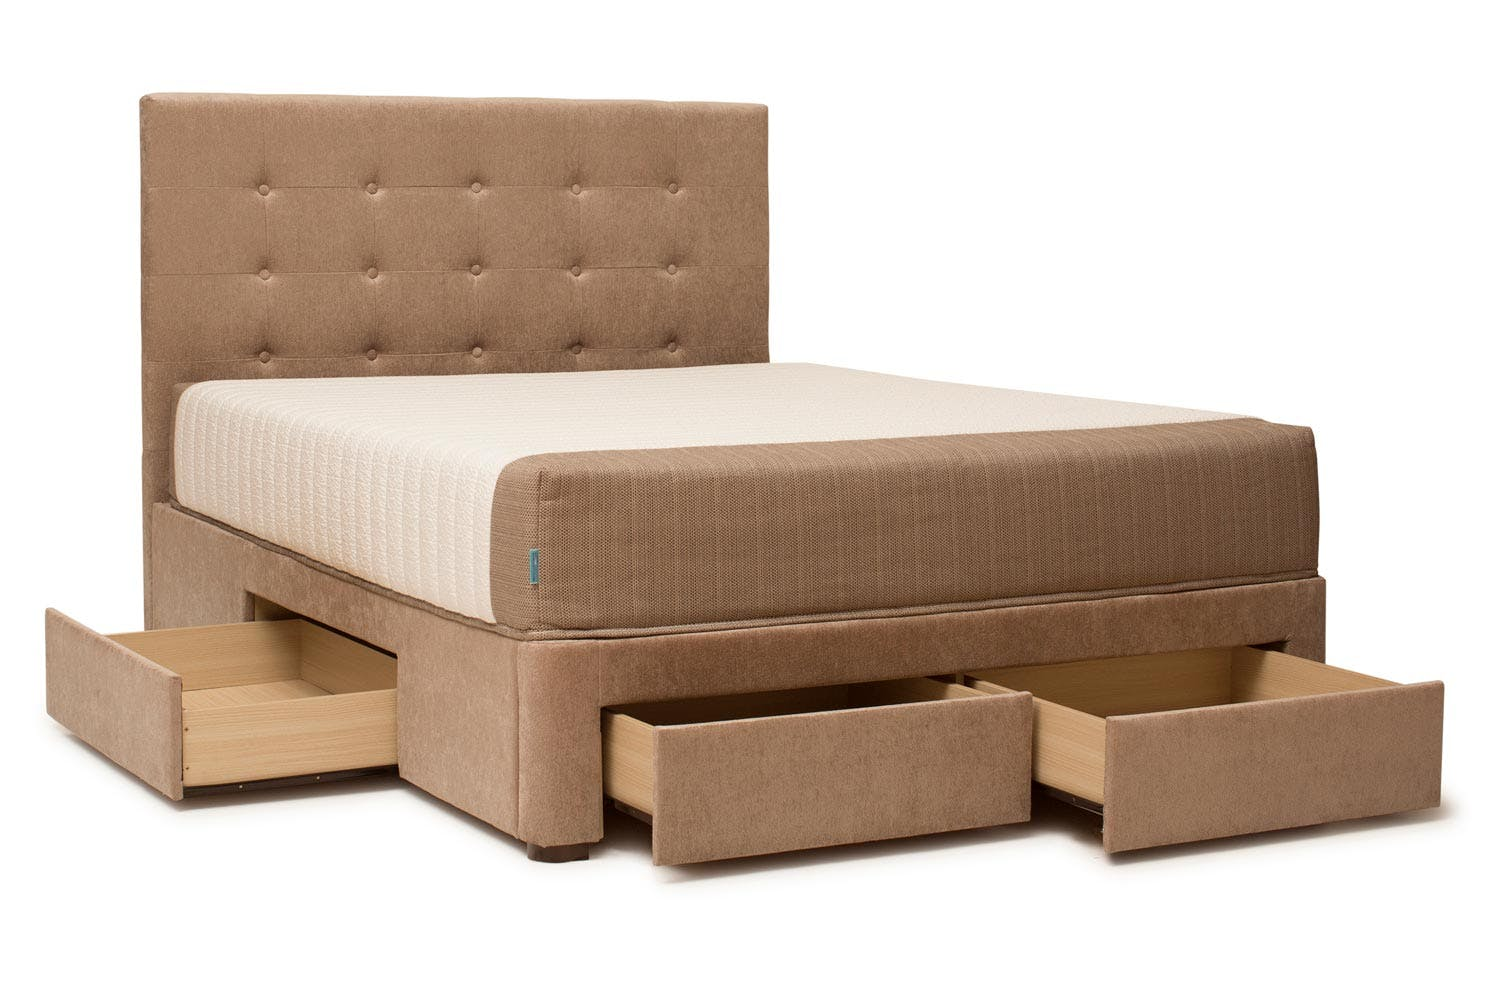 Tufted bed with storage duval bed tufted button headboard for Gnn bathroom fans